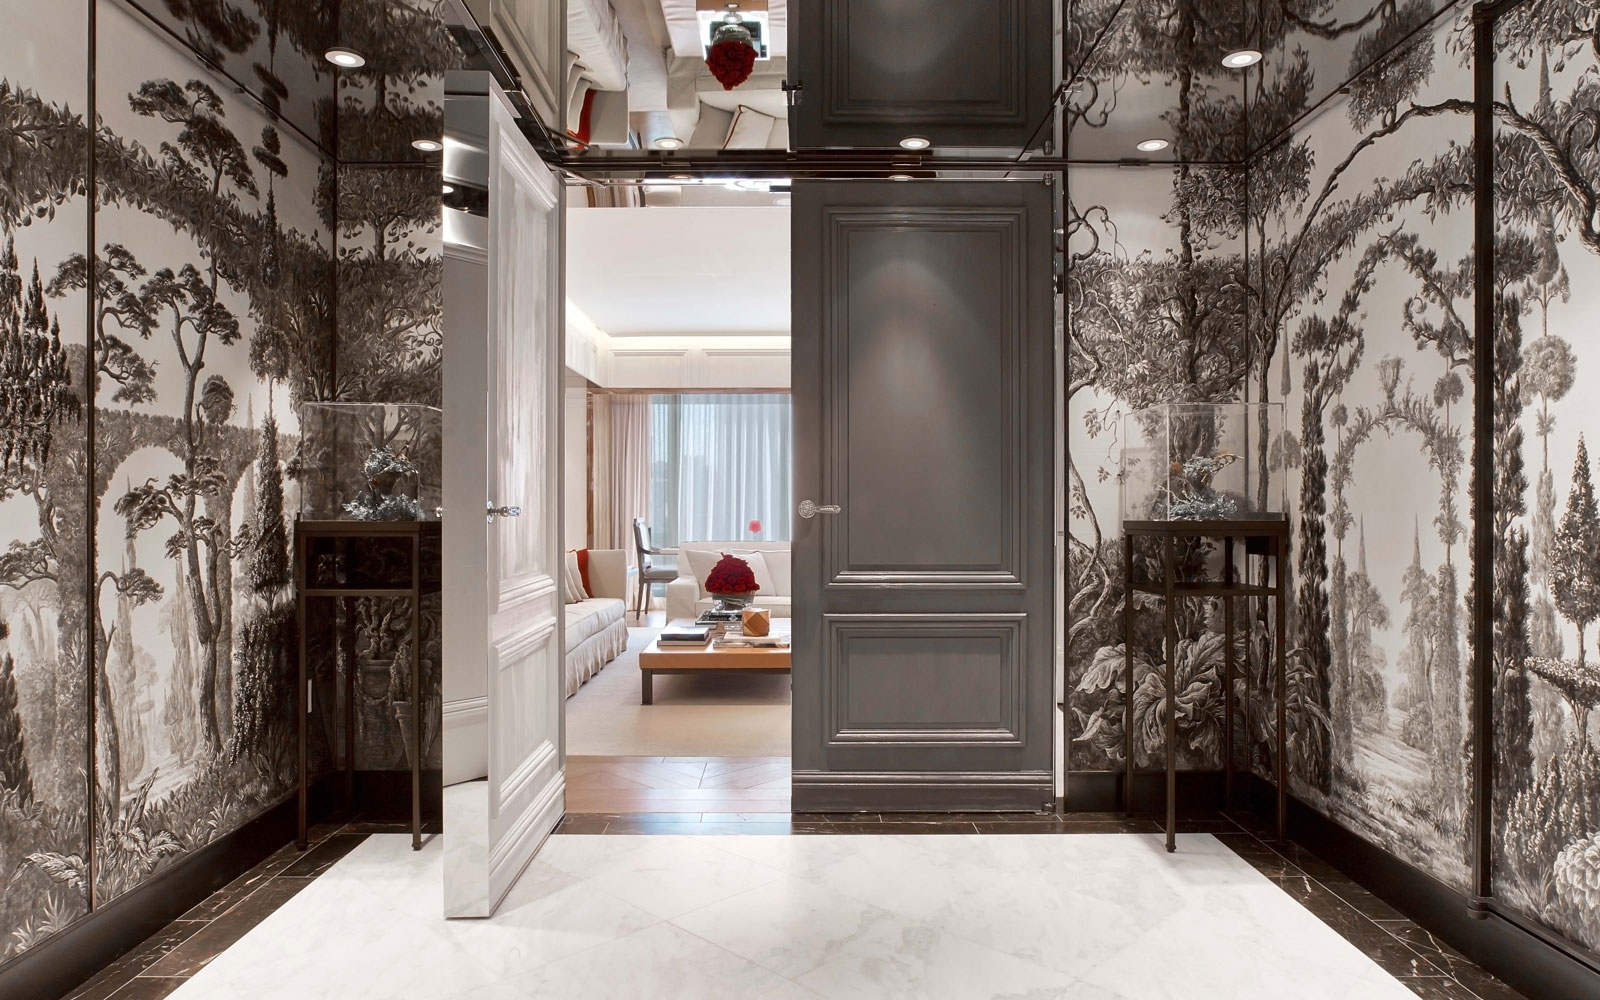 The Suite Life: The $18,000 A Night Baccarat Suite